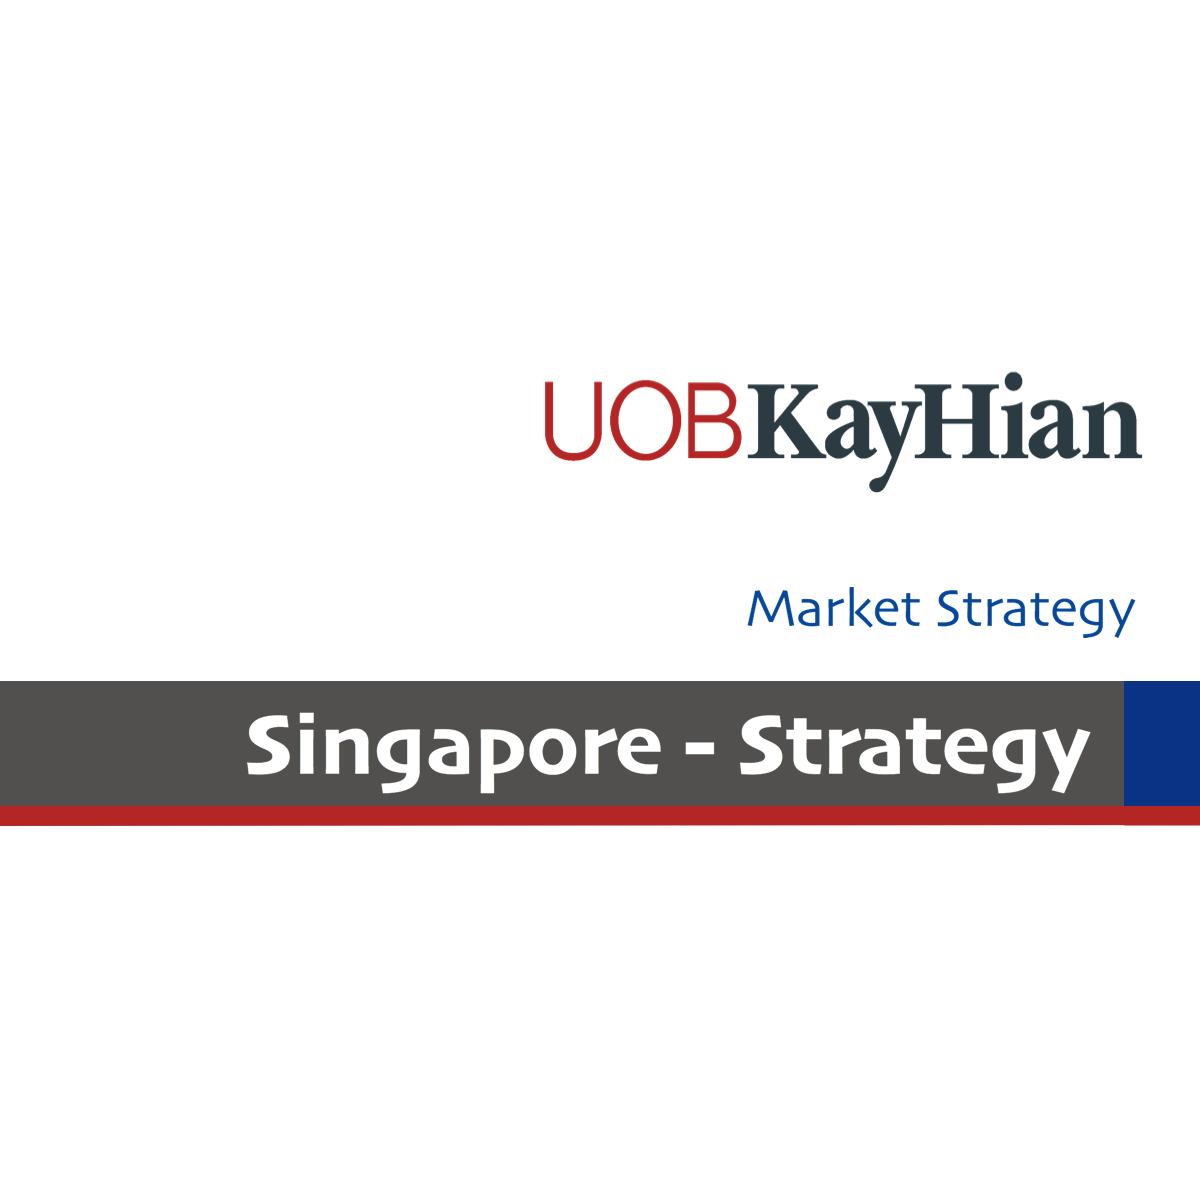 2H18 Market Strategy - UOB Kay Hian 2018-06-01: Stock Picks For The Rest Of 2018.